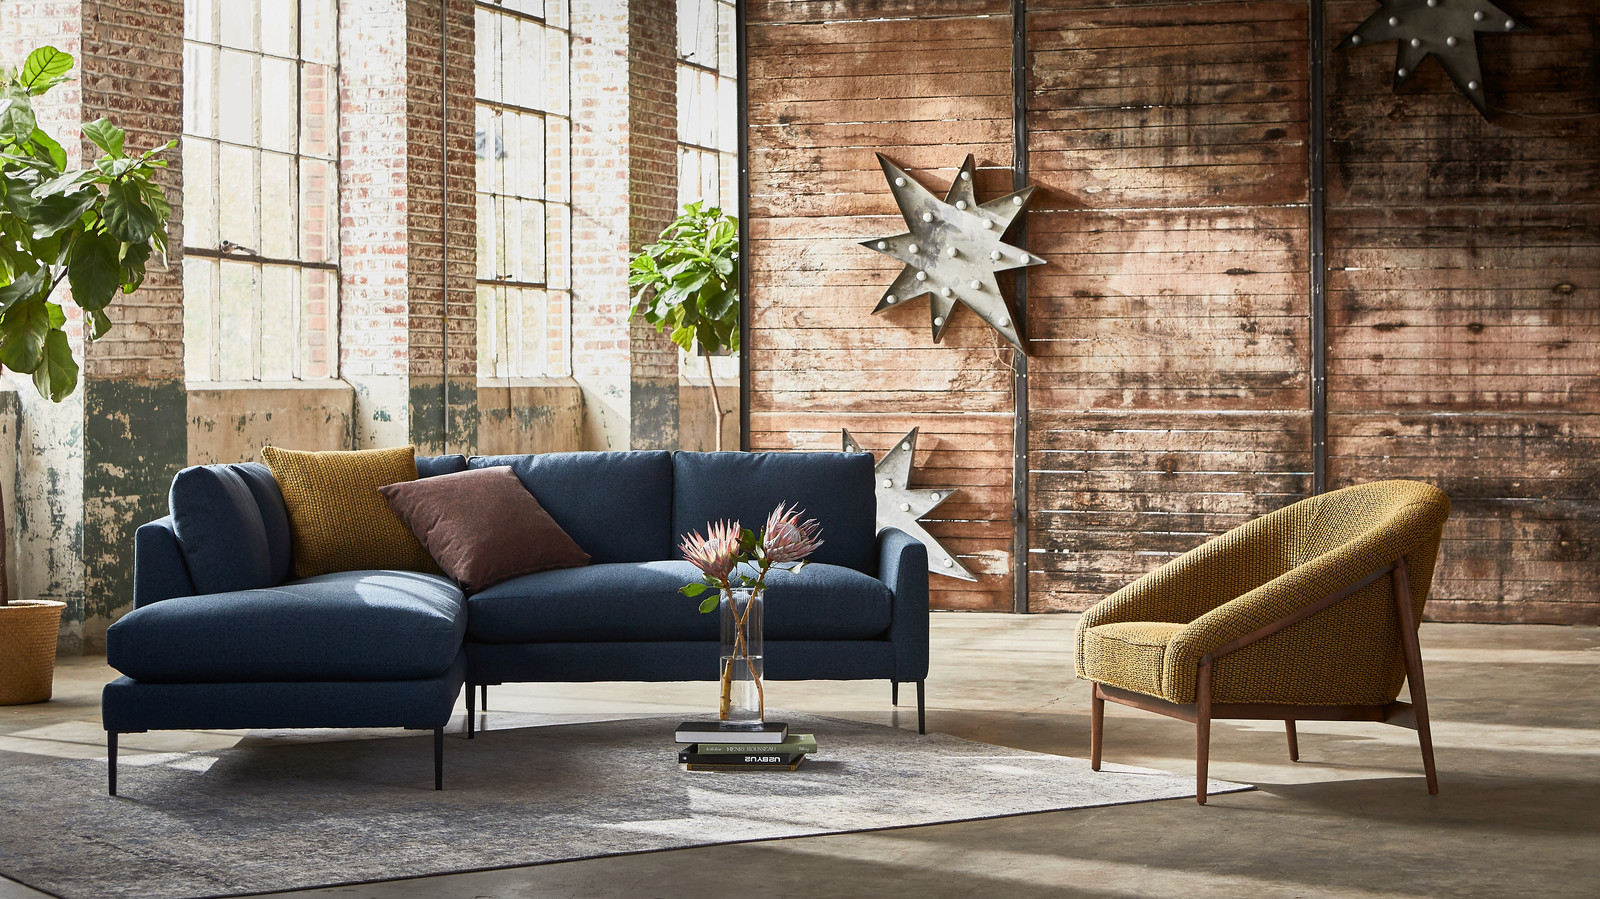 Remarkable Slim Sofa Rose Chair From Younger Alphanode Cool Chair Designs And Ideas Alphanodeonline